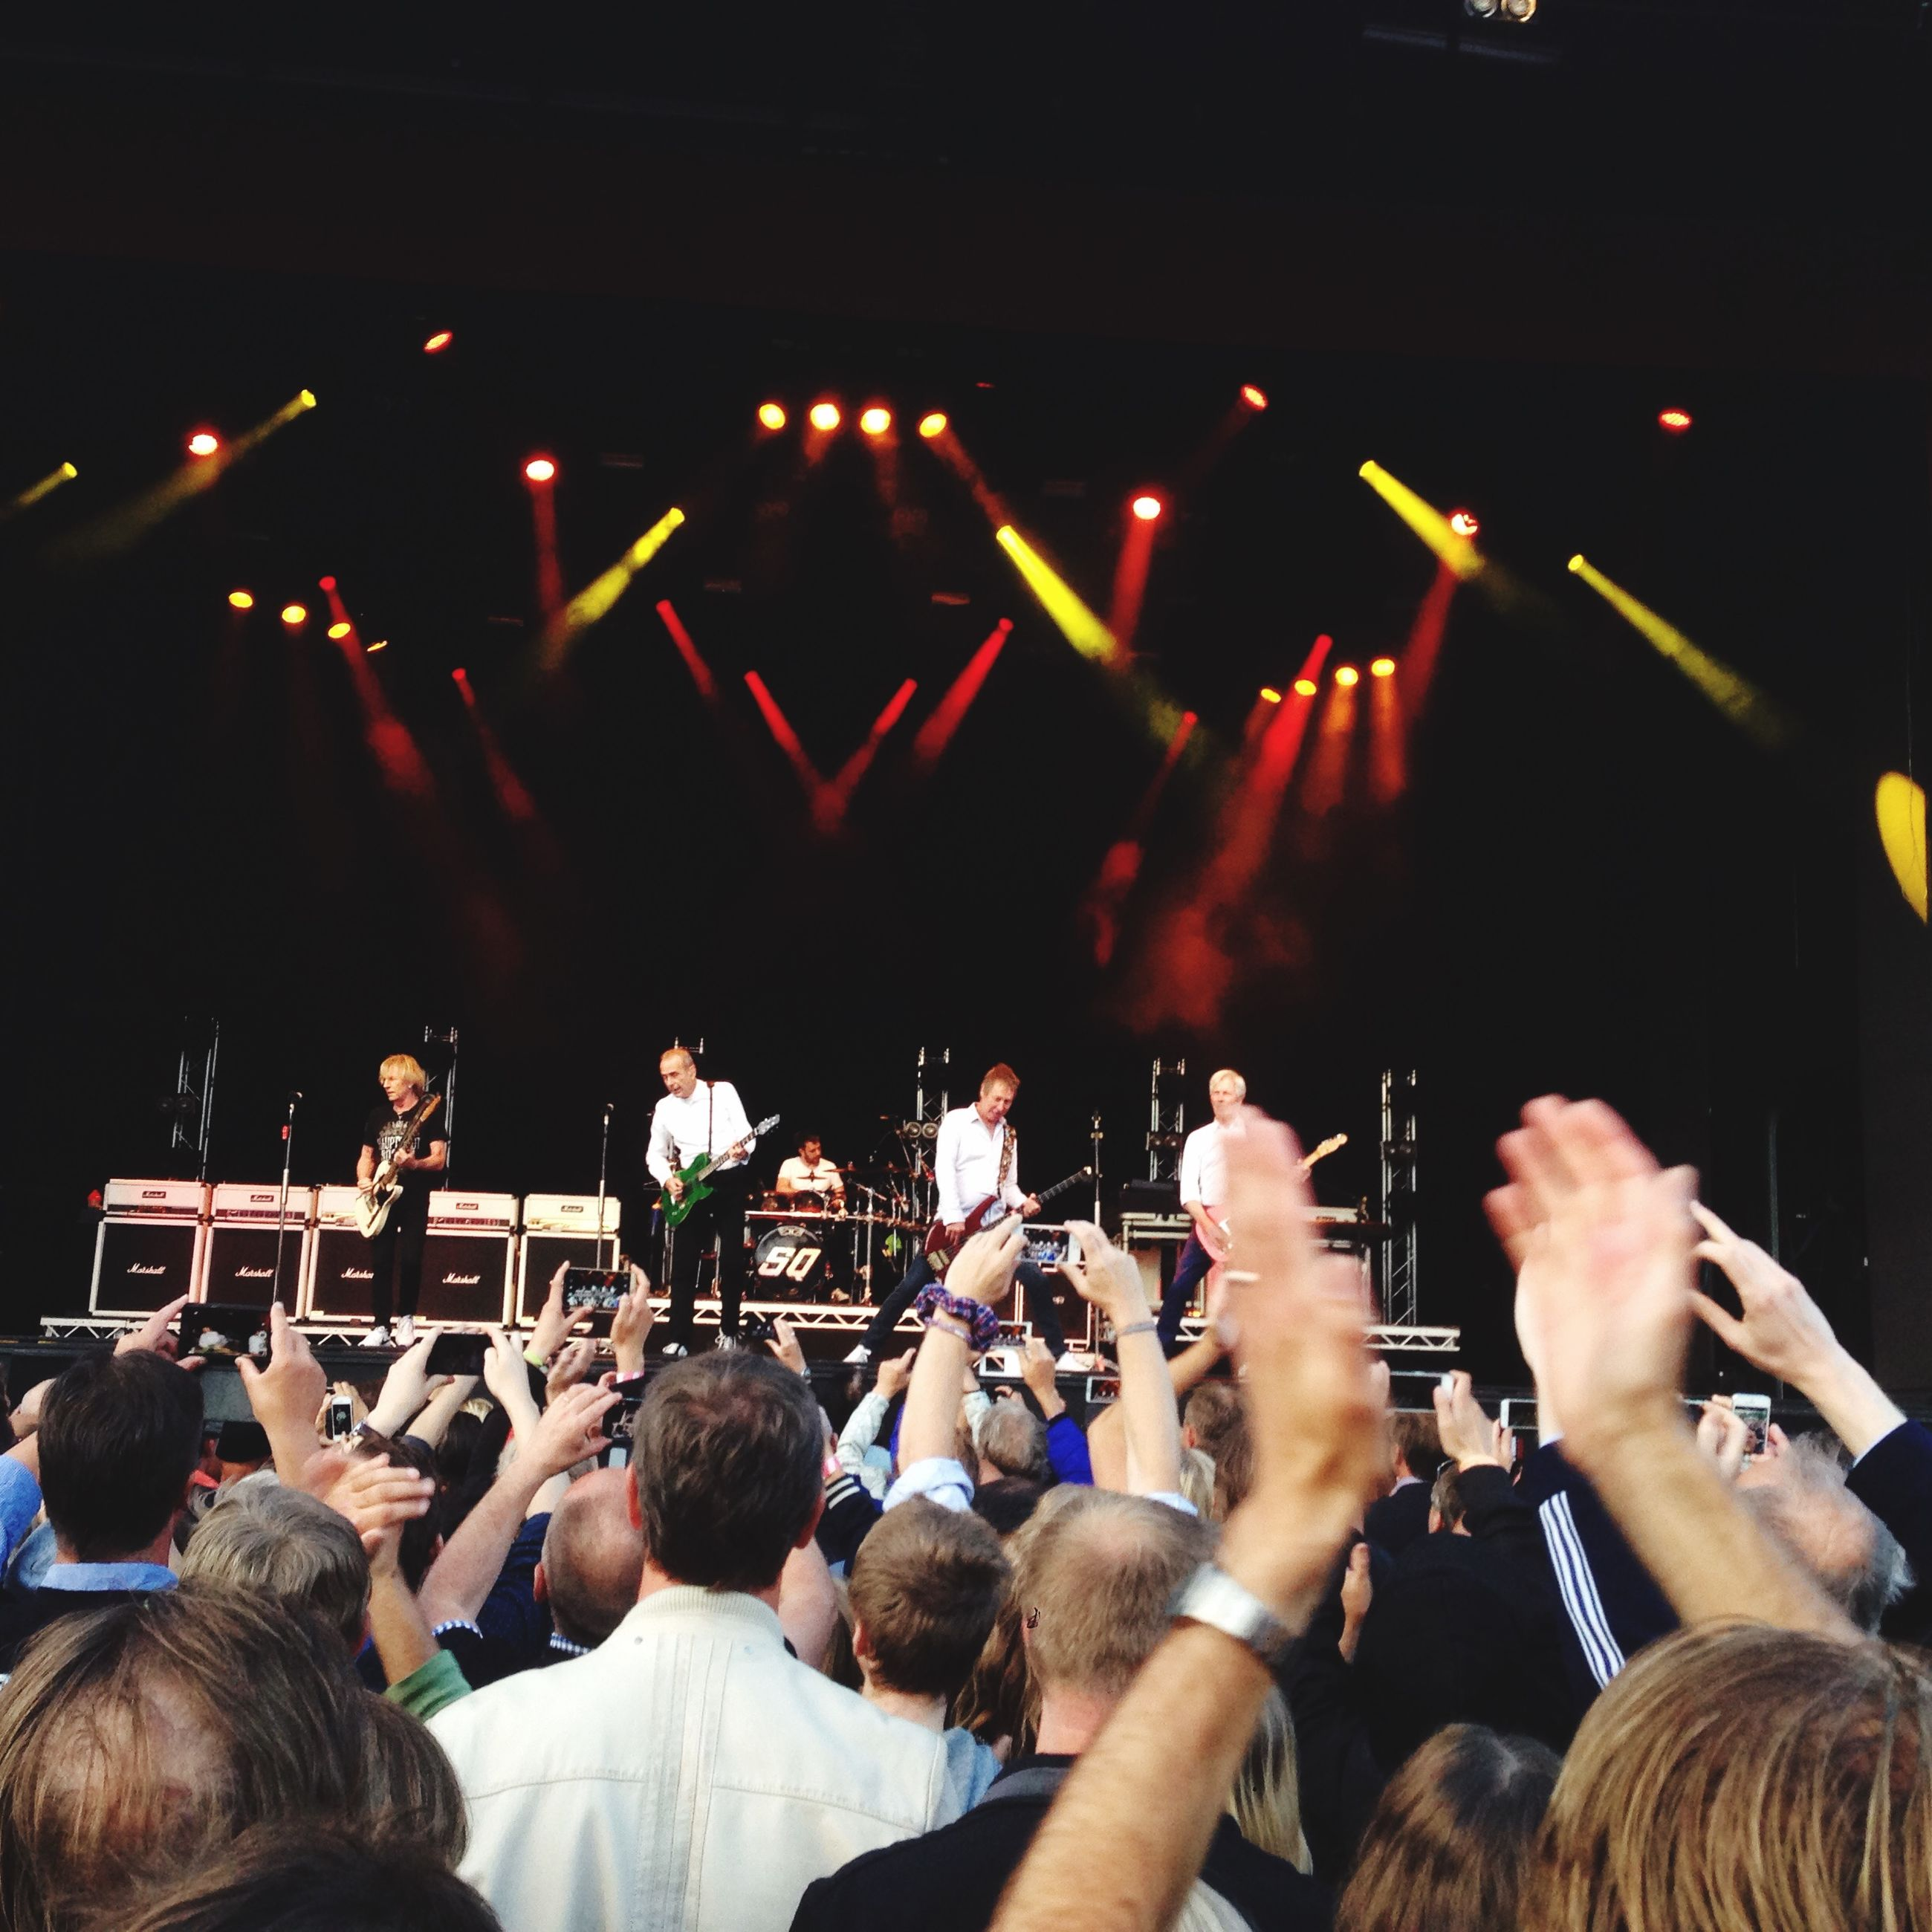 large group of people, crowd, arts culture and entertainment, lifestyles, leisure activity, illuminated, music, event, men, performance, togetherness, enjoyment, celebration, fun, night, person, nightlife, concert